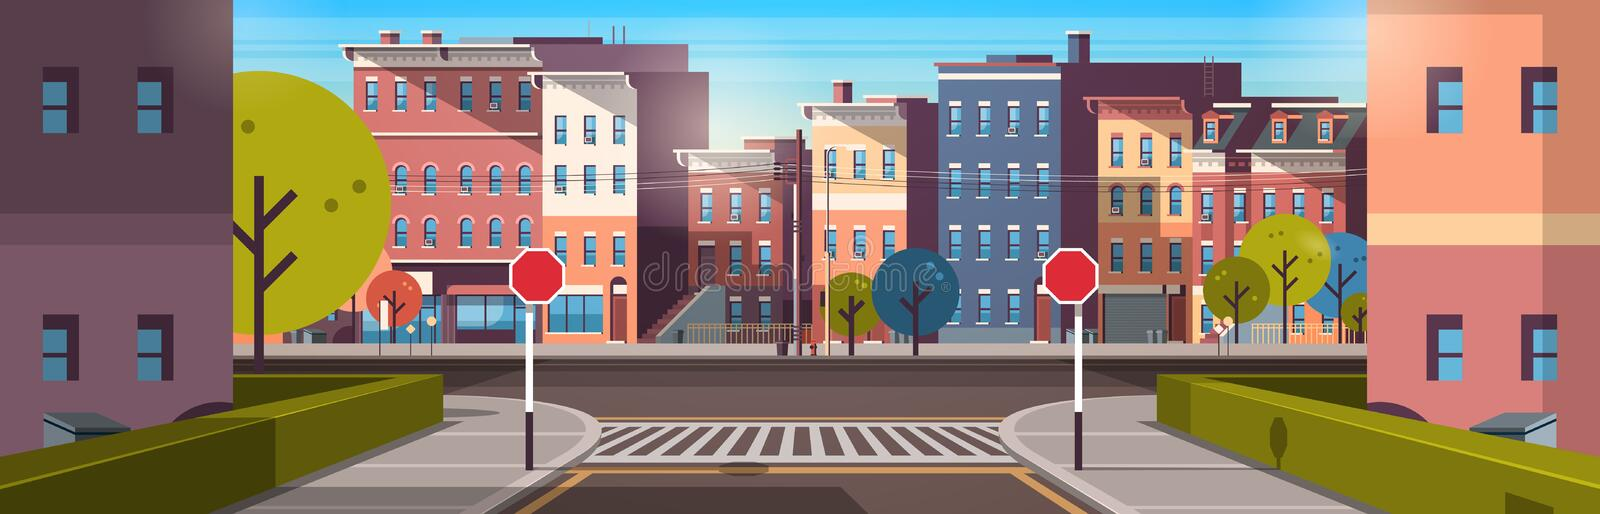 City street building houses architecture empty downtown road urban cityscape early morning sunrise horizontal banner. Flat vector illustration royalty free illustration